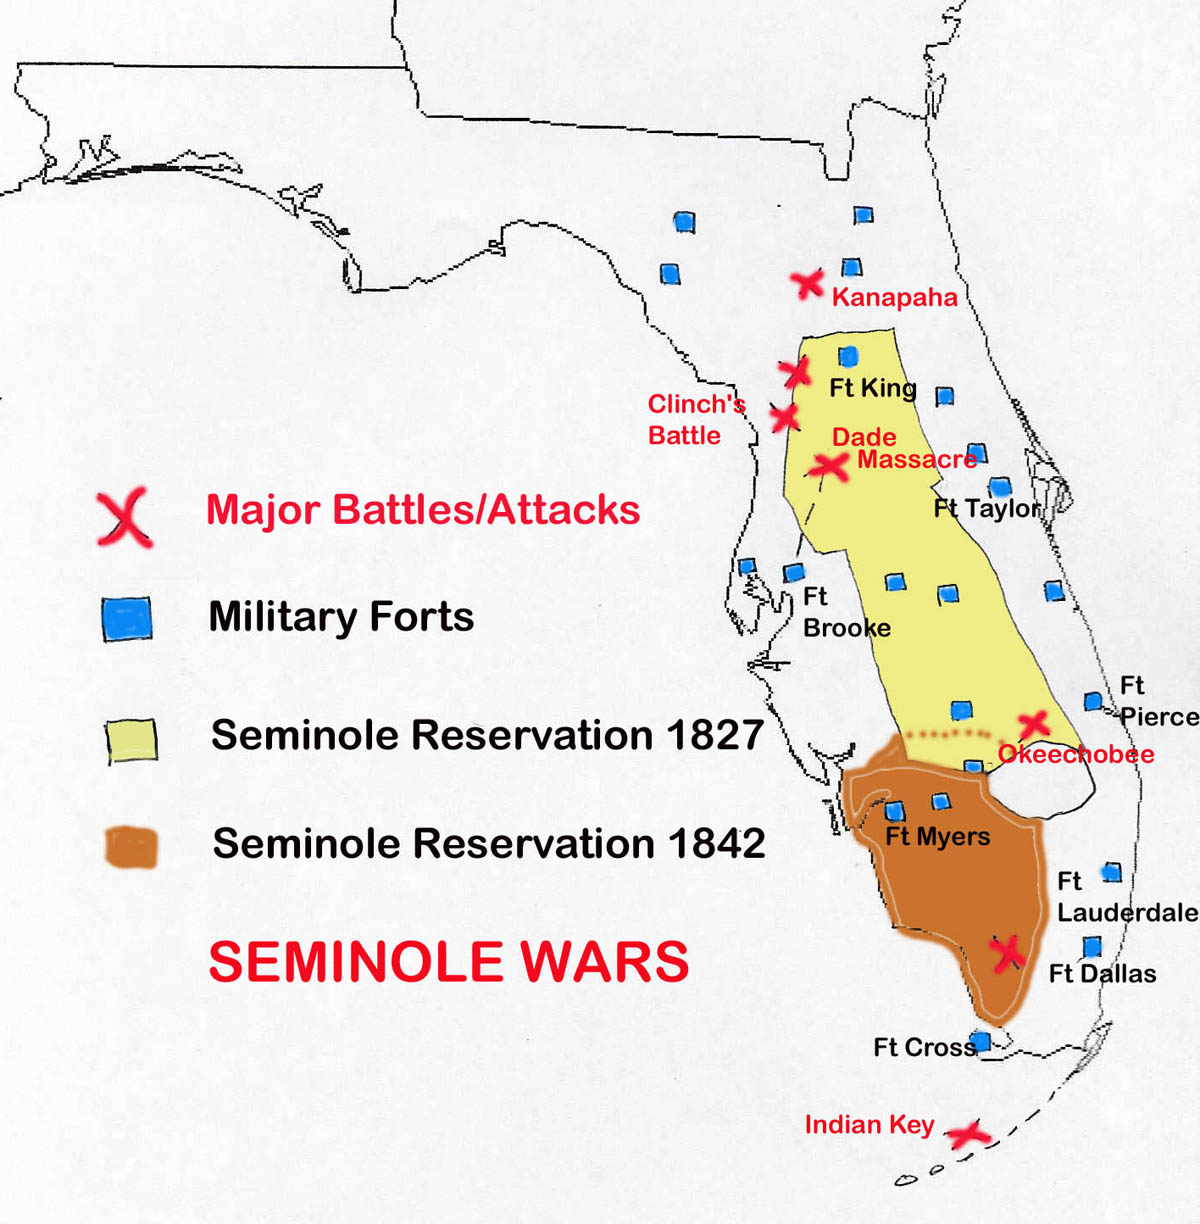 THE SEMINOLE WARS IN FLORIDA - Florida map ft pierce